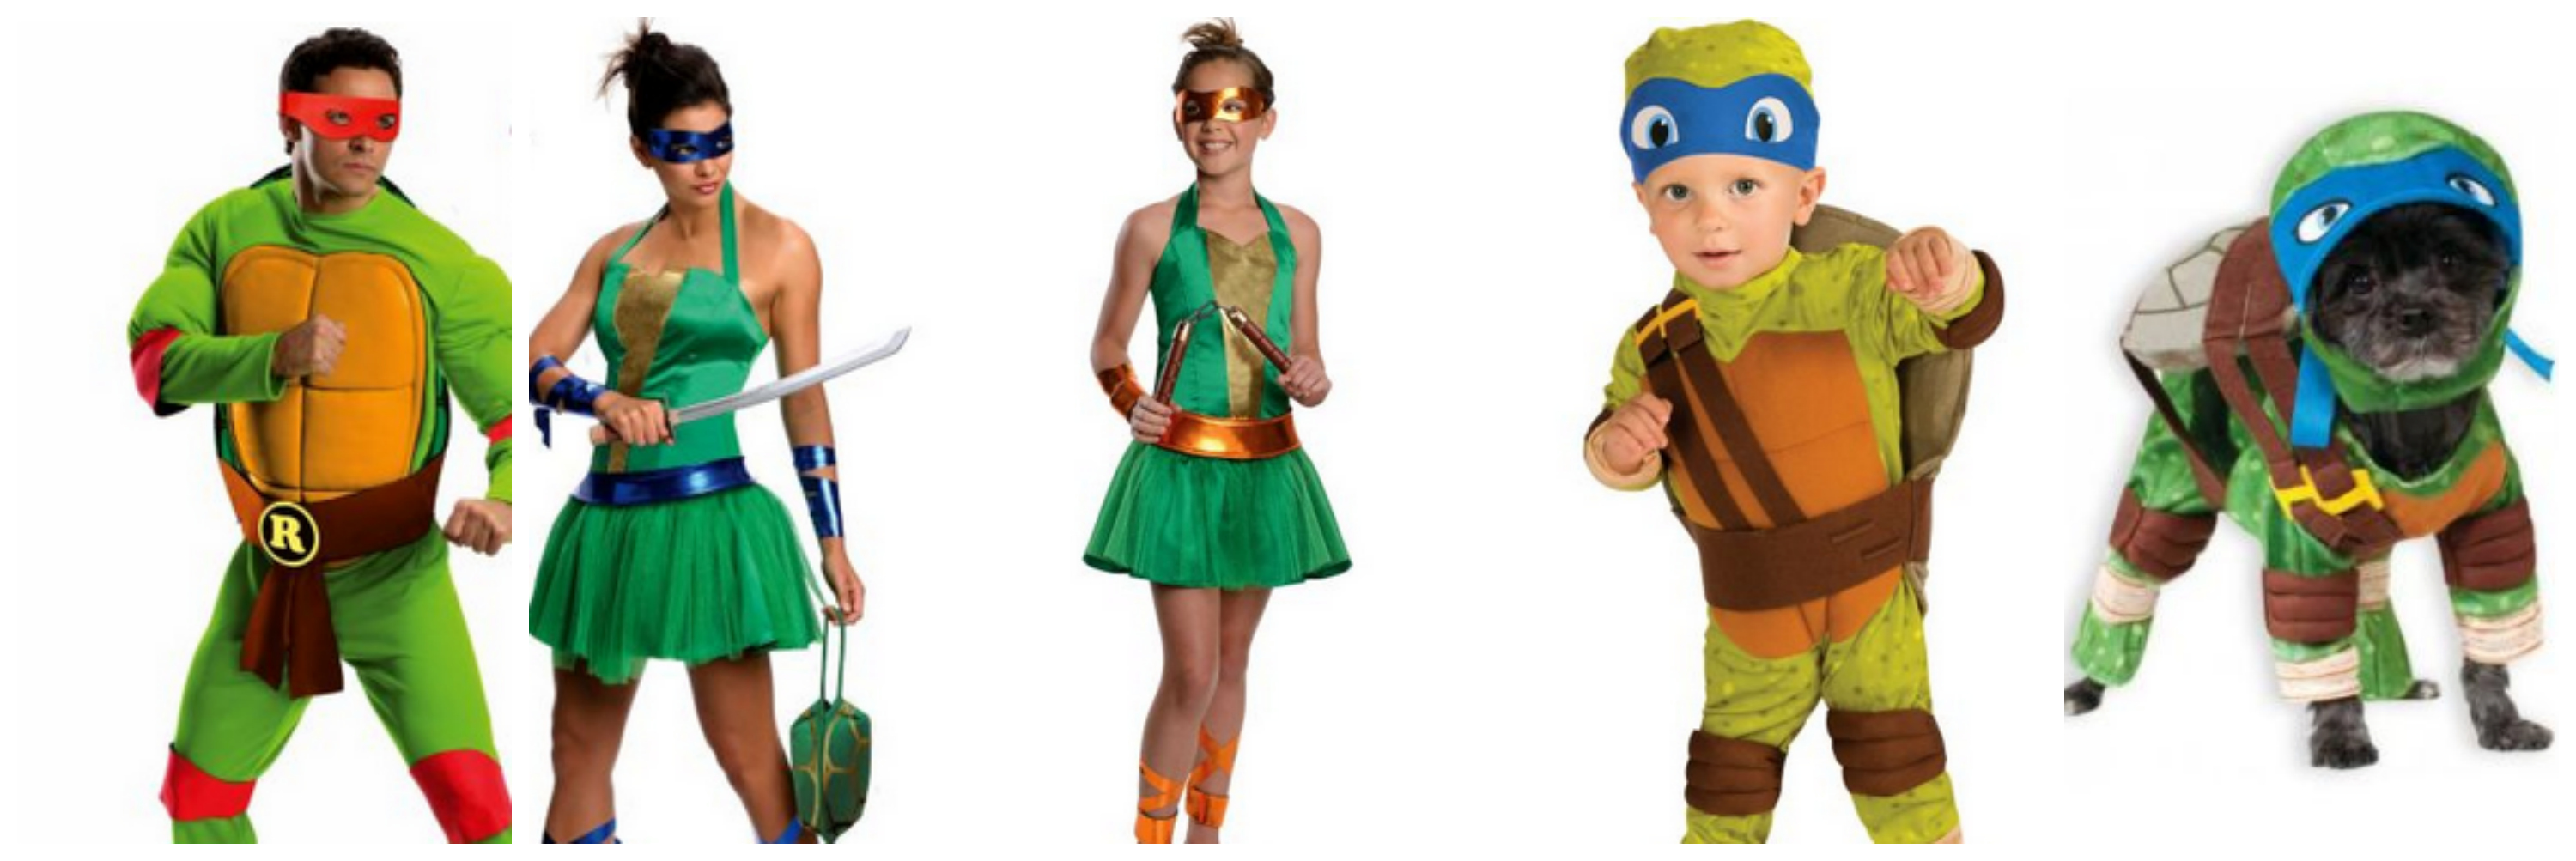 Teenage Mutant Ninja Turtle Family Costume Idea